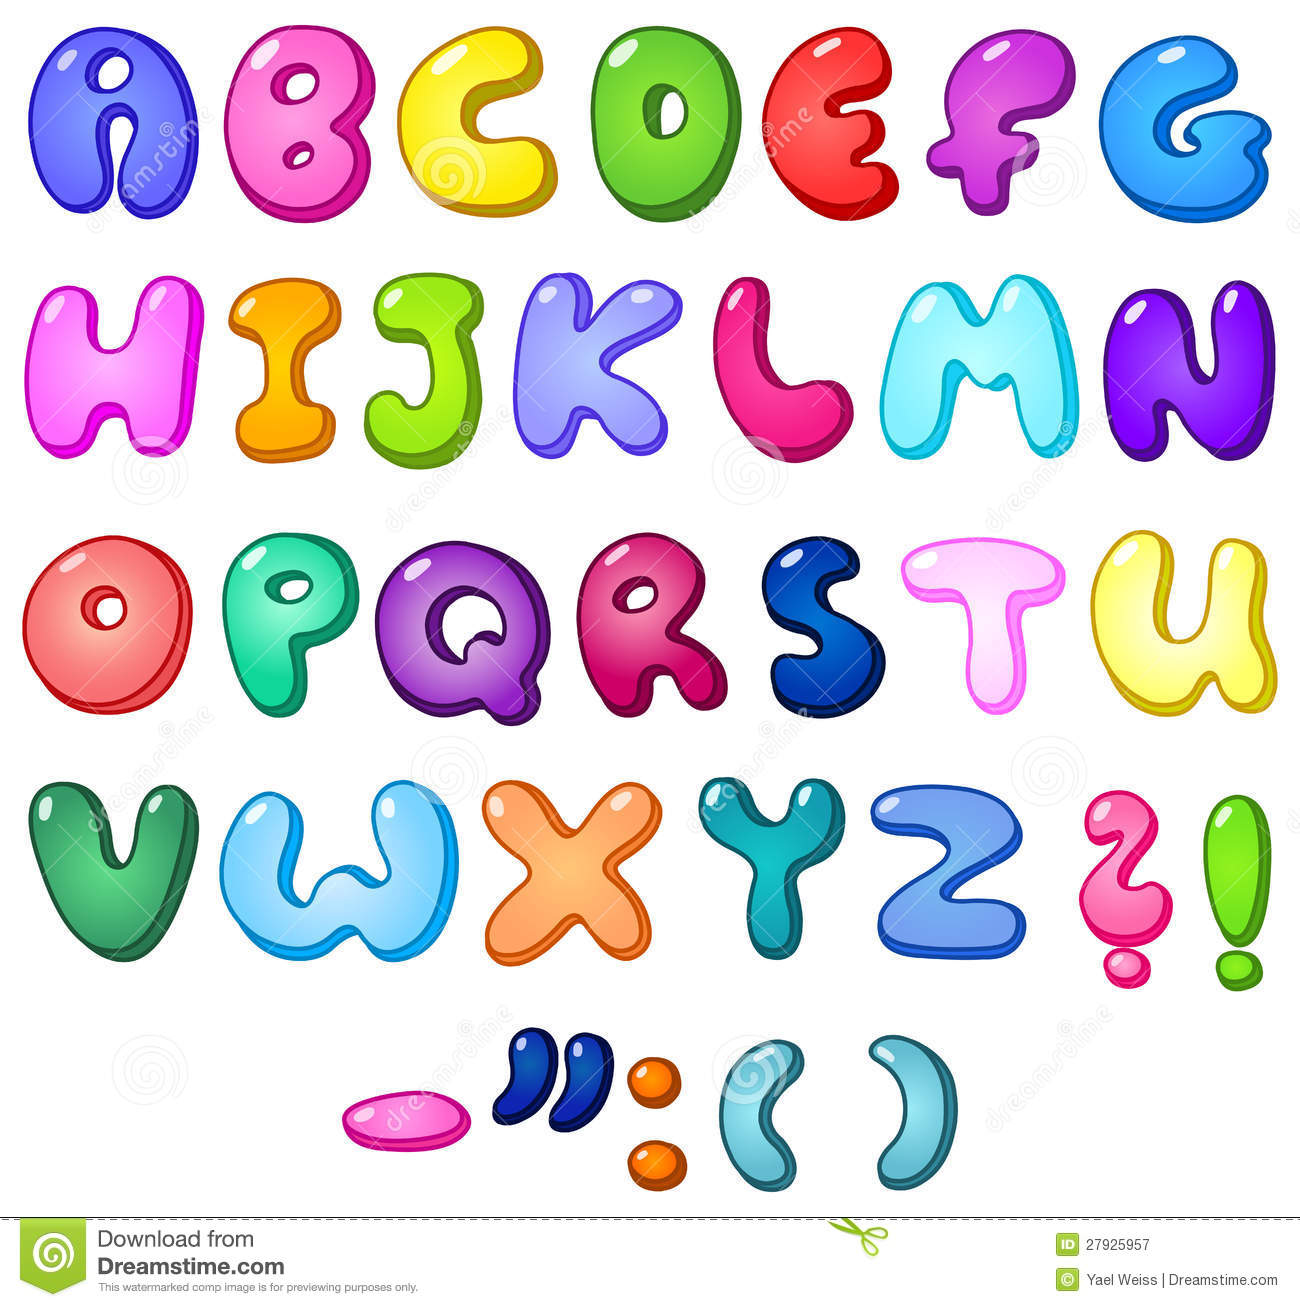 Alphabet. Copy of lessons tes